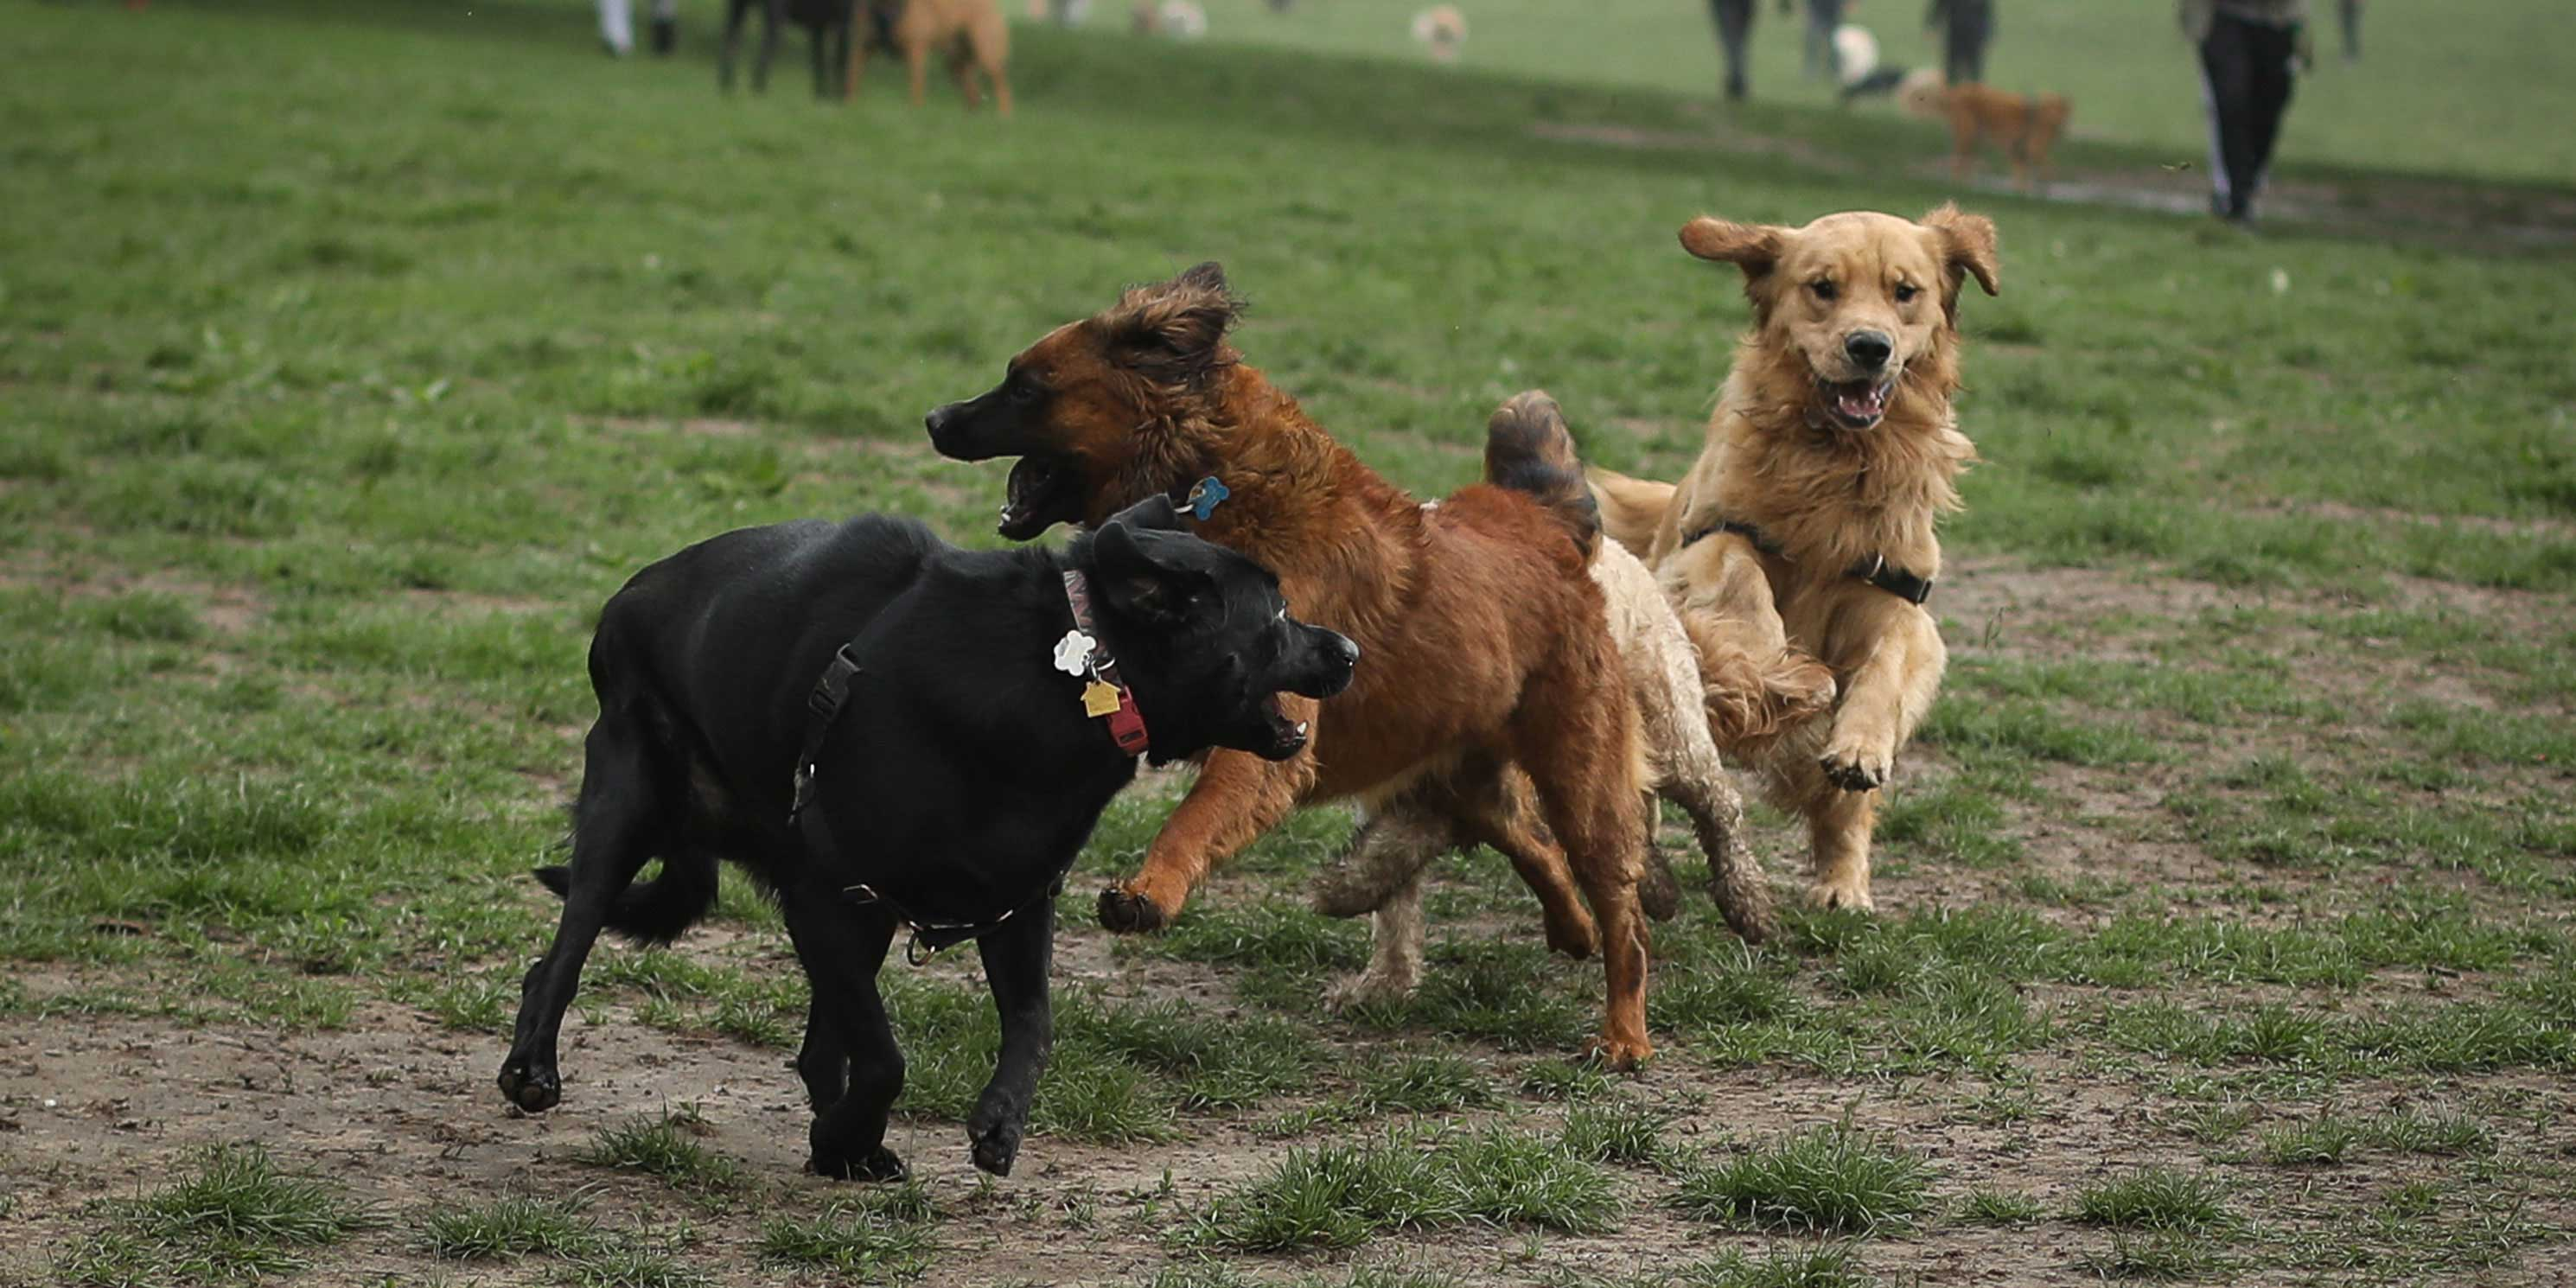 dogs run on the grass in park